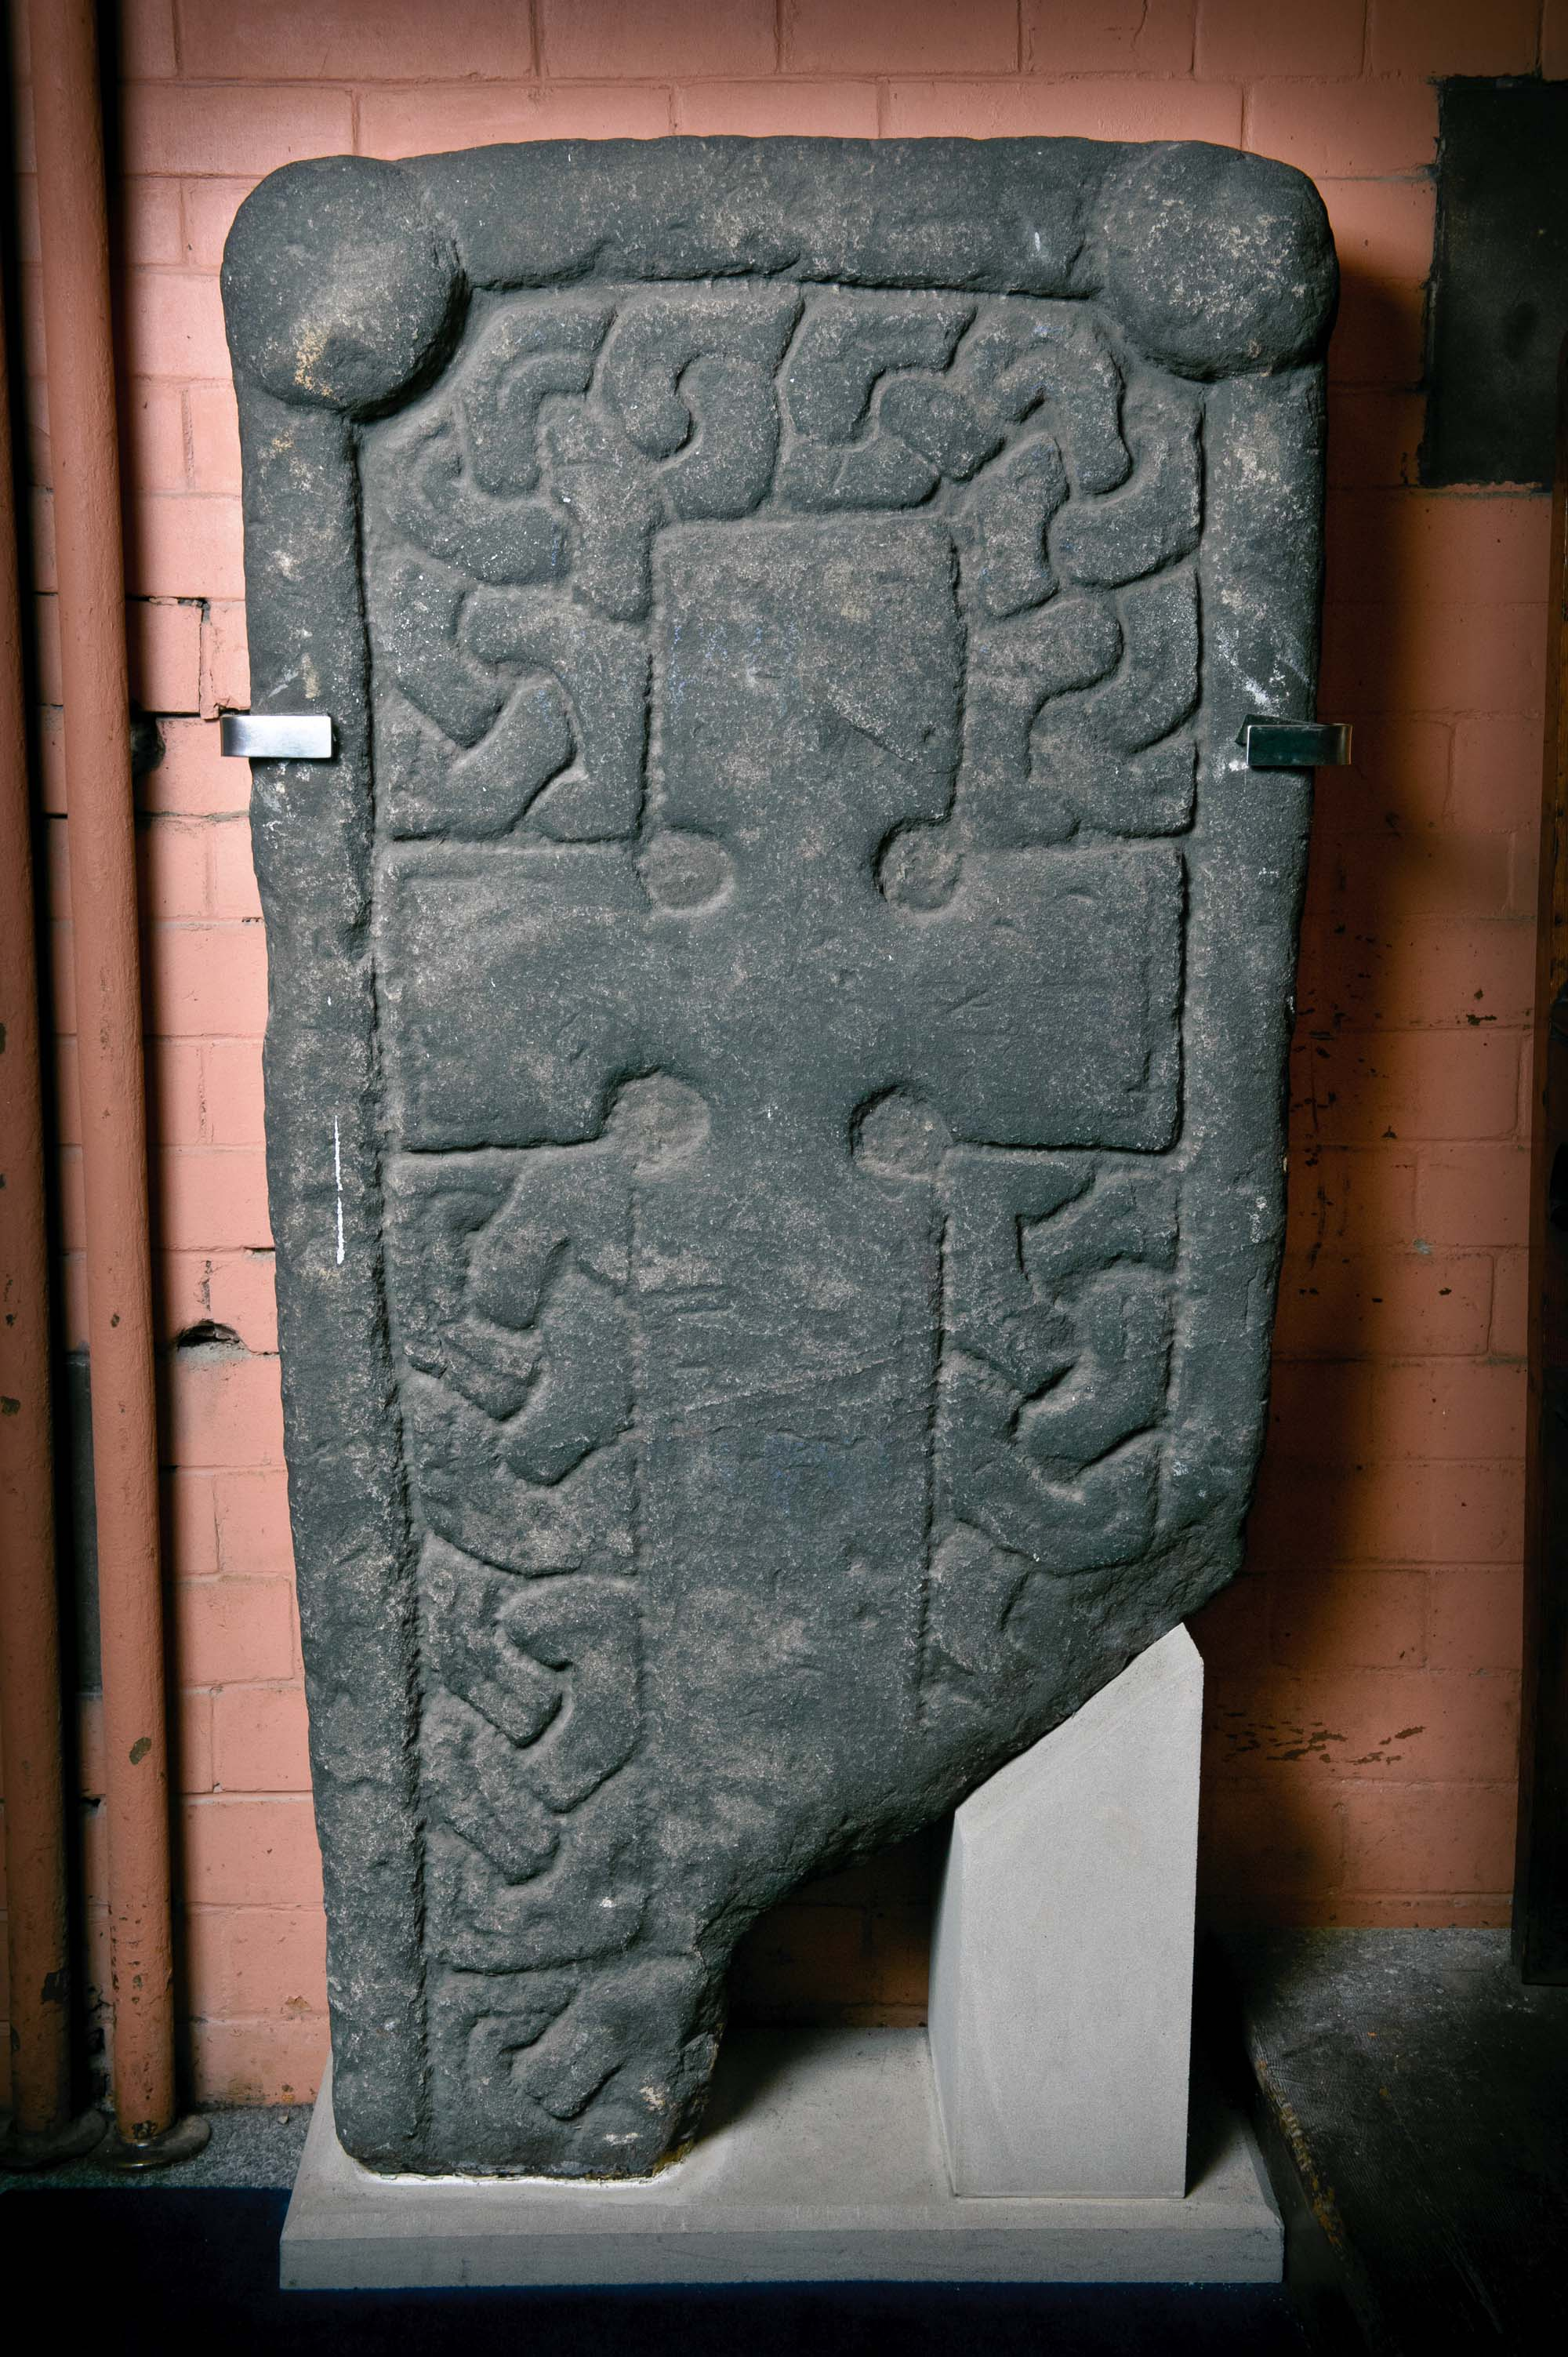 a photo of a stone decorated with a Celtic cross